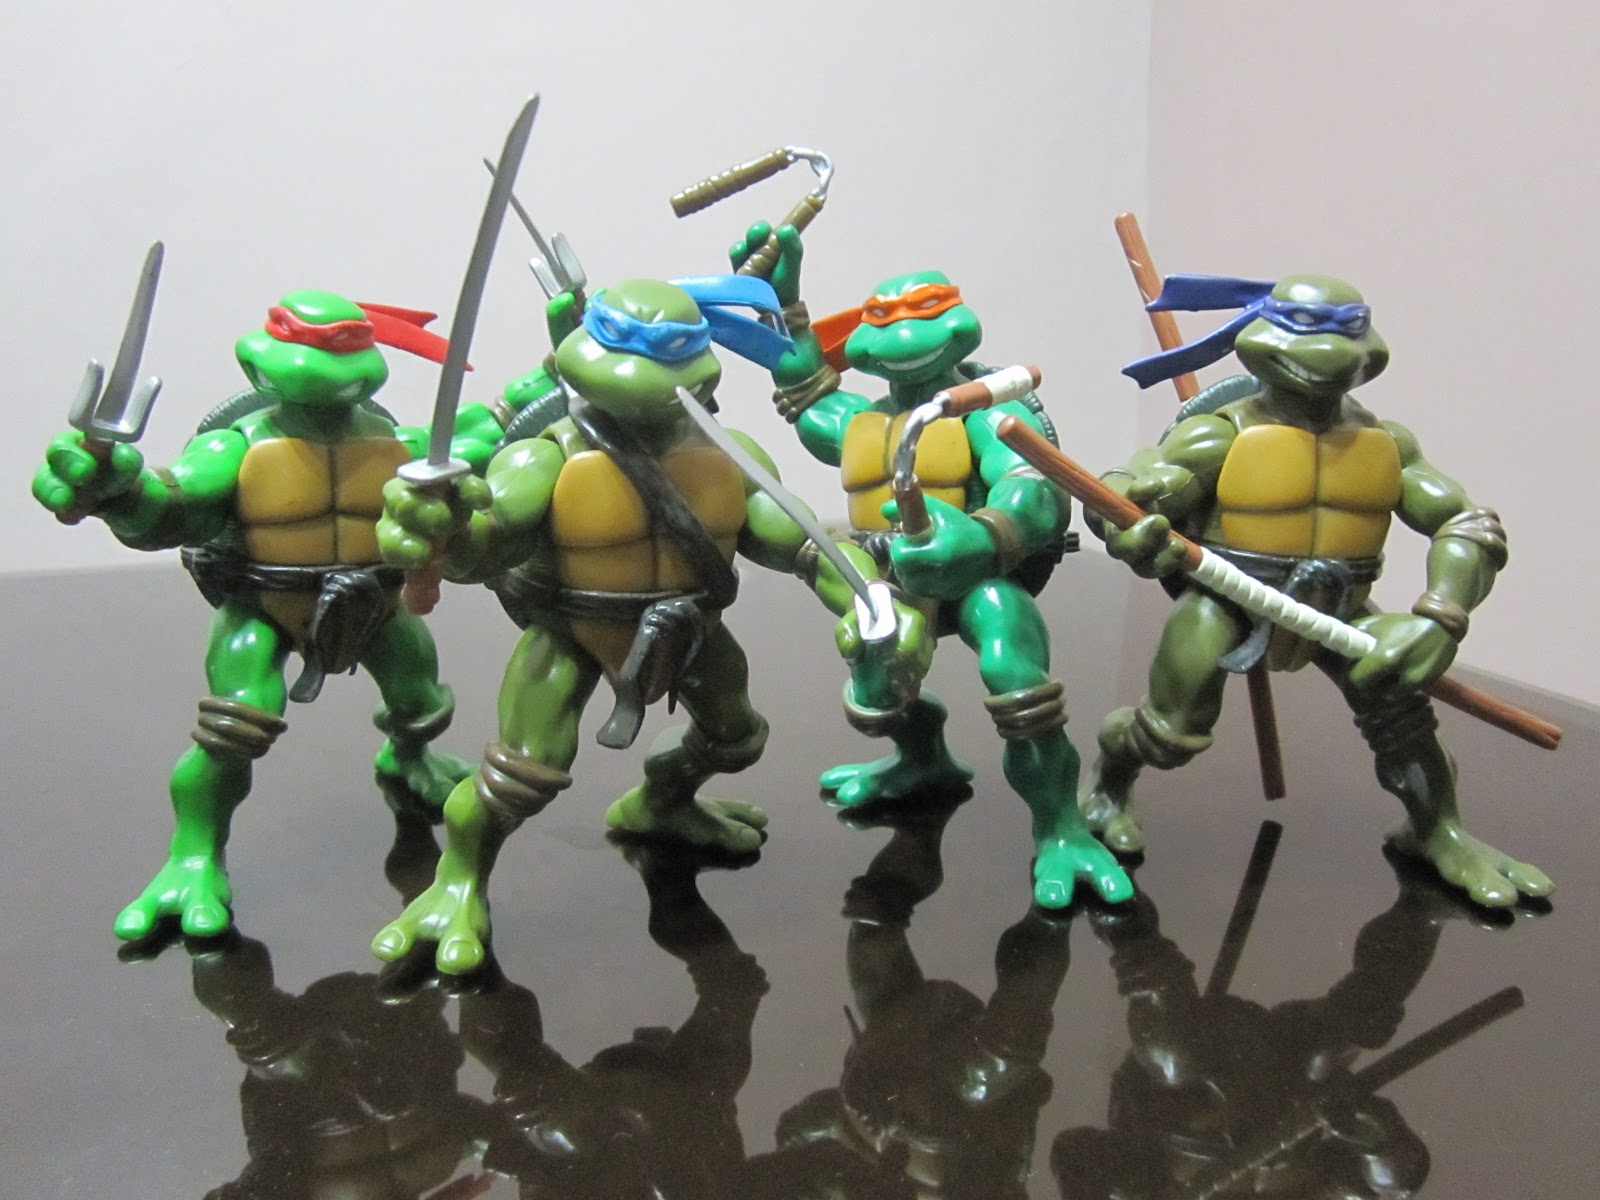 Teenage Mutant Ninja Turtles 2003 Toys : Teenage mutant ninja turtles action figure planet